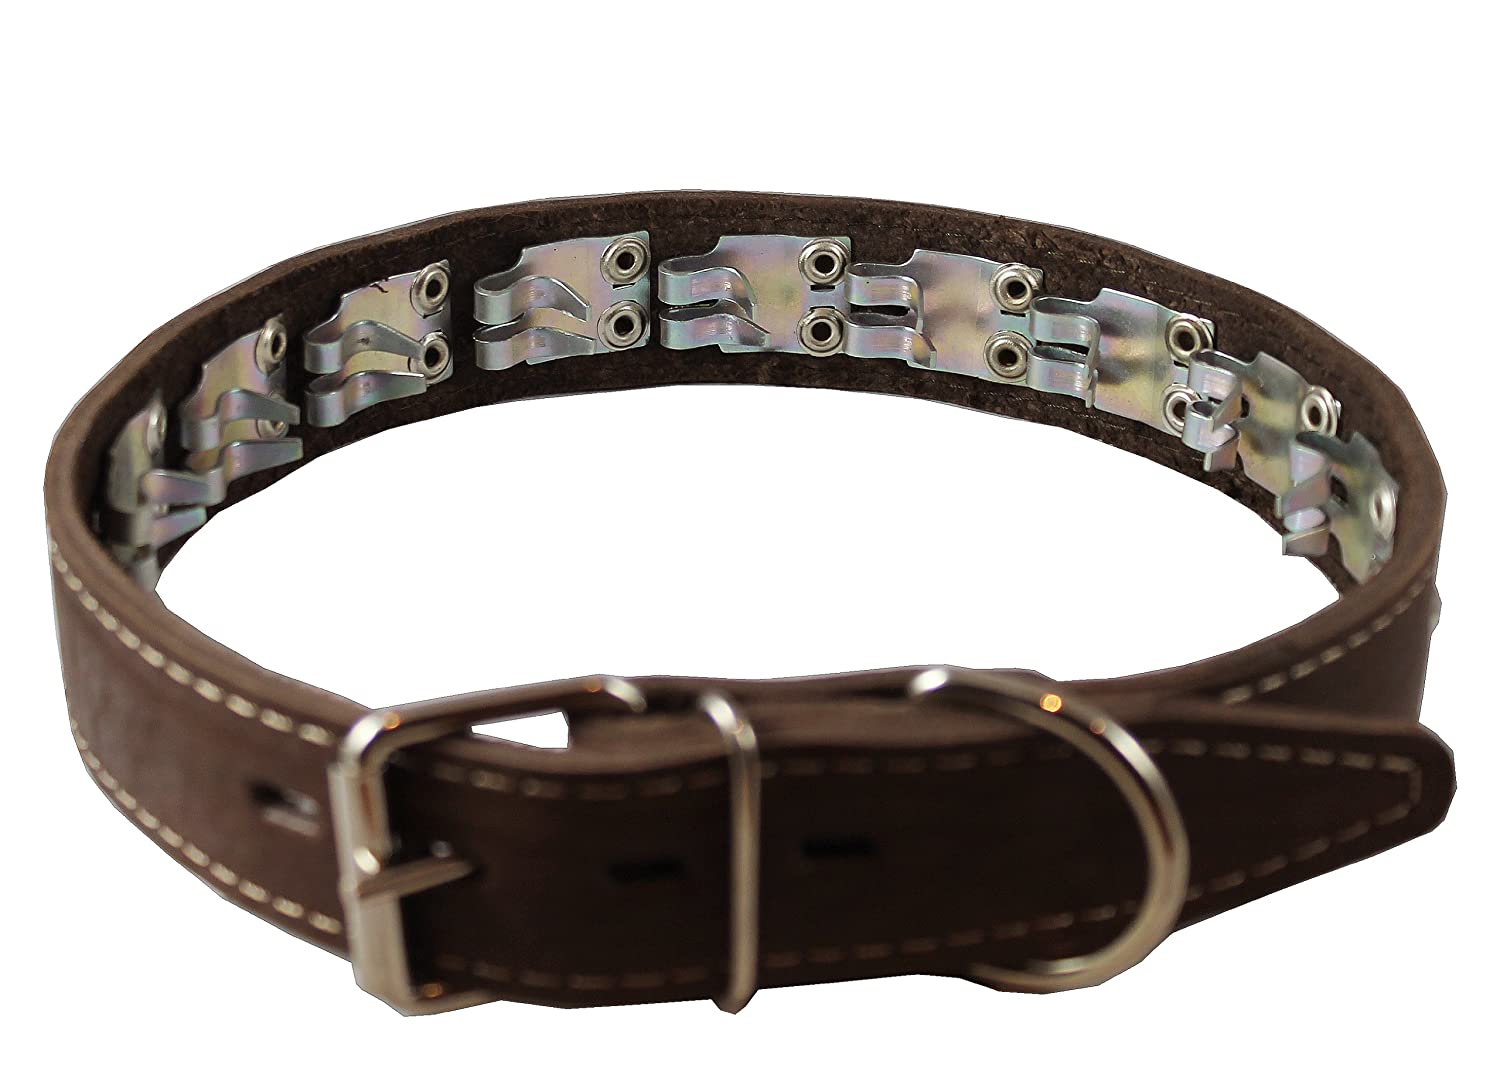 Training Pinch and Genuine Leather Studded Dog Collar Fits 16-19 Neck Brown 24x1 Wide